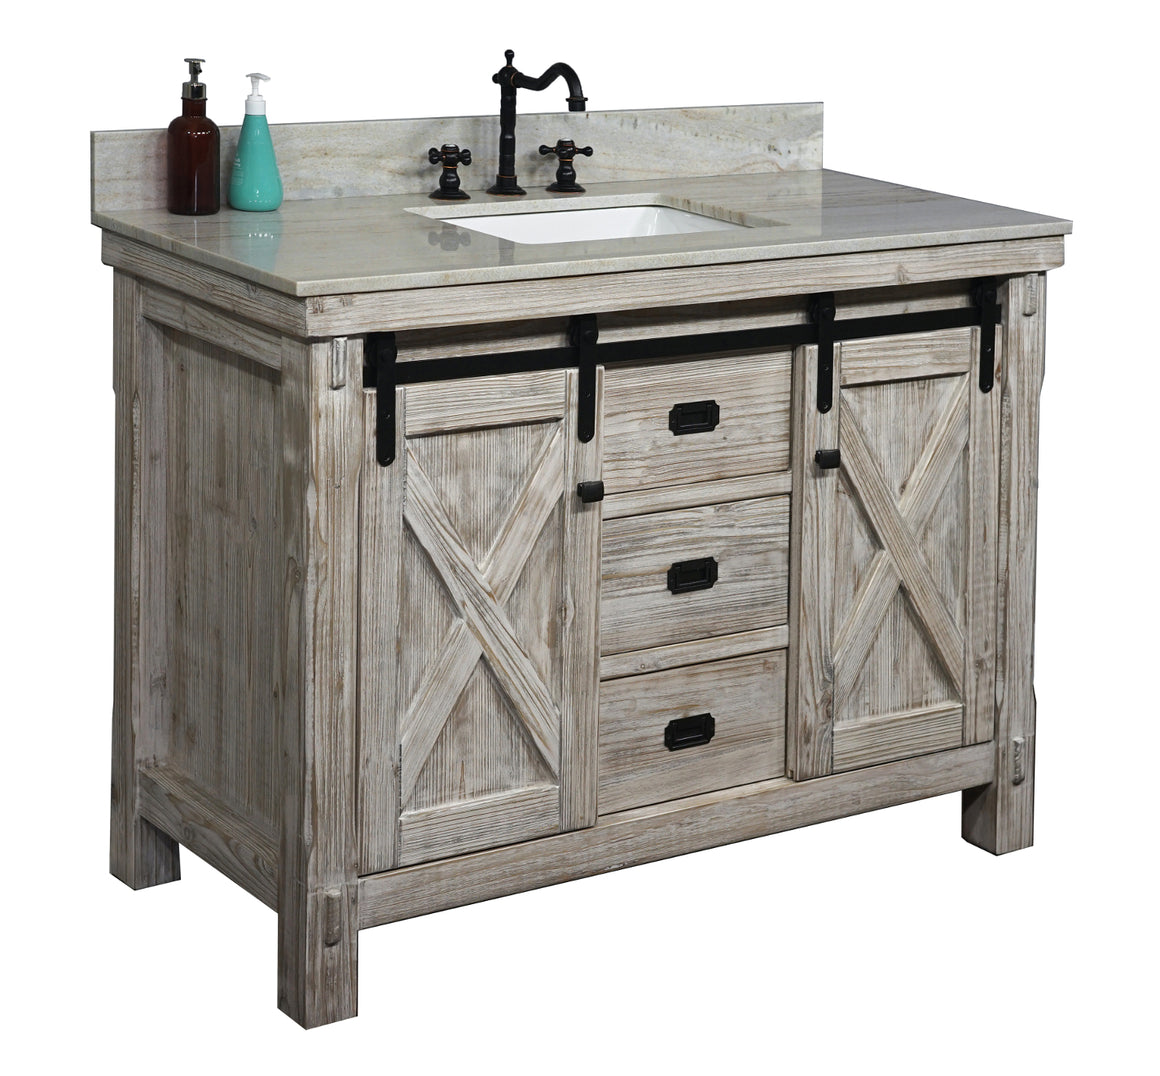 "48""RUSTIC SOLID FIR BARN DOOR STYLE SINGLE SINK VANITY IN WHITE WASH WITH COASTAL SANDS MARBLE TOP WITH RECTANGULAR SINK-NO FAUCET"